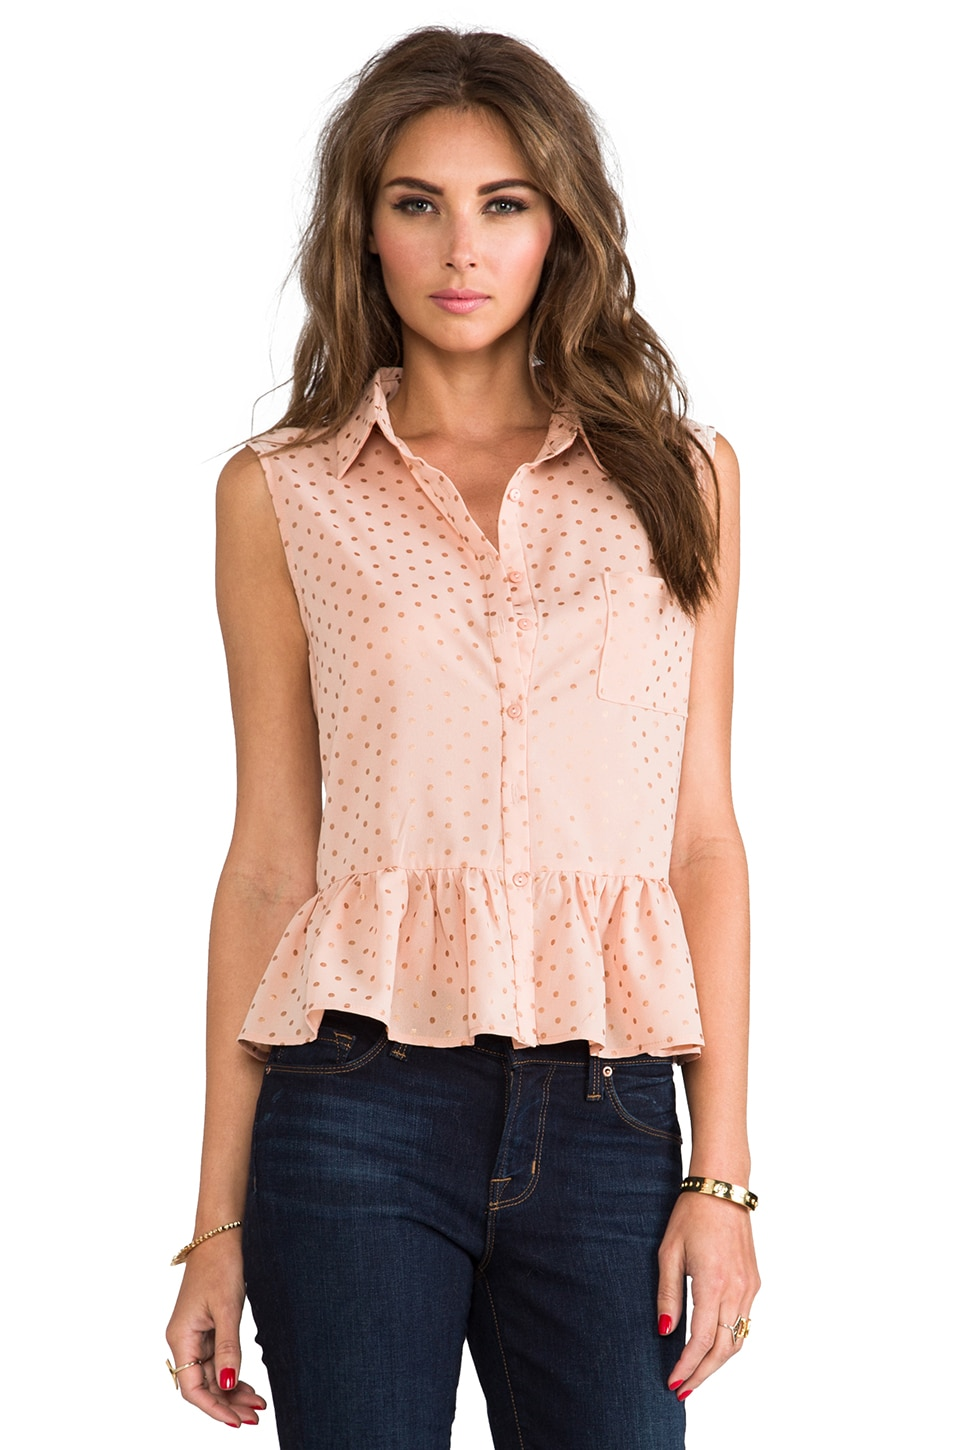 Lucca Couture Cut Out Sleeveless Button-down in Blush/Gold